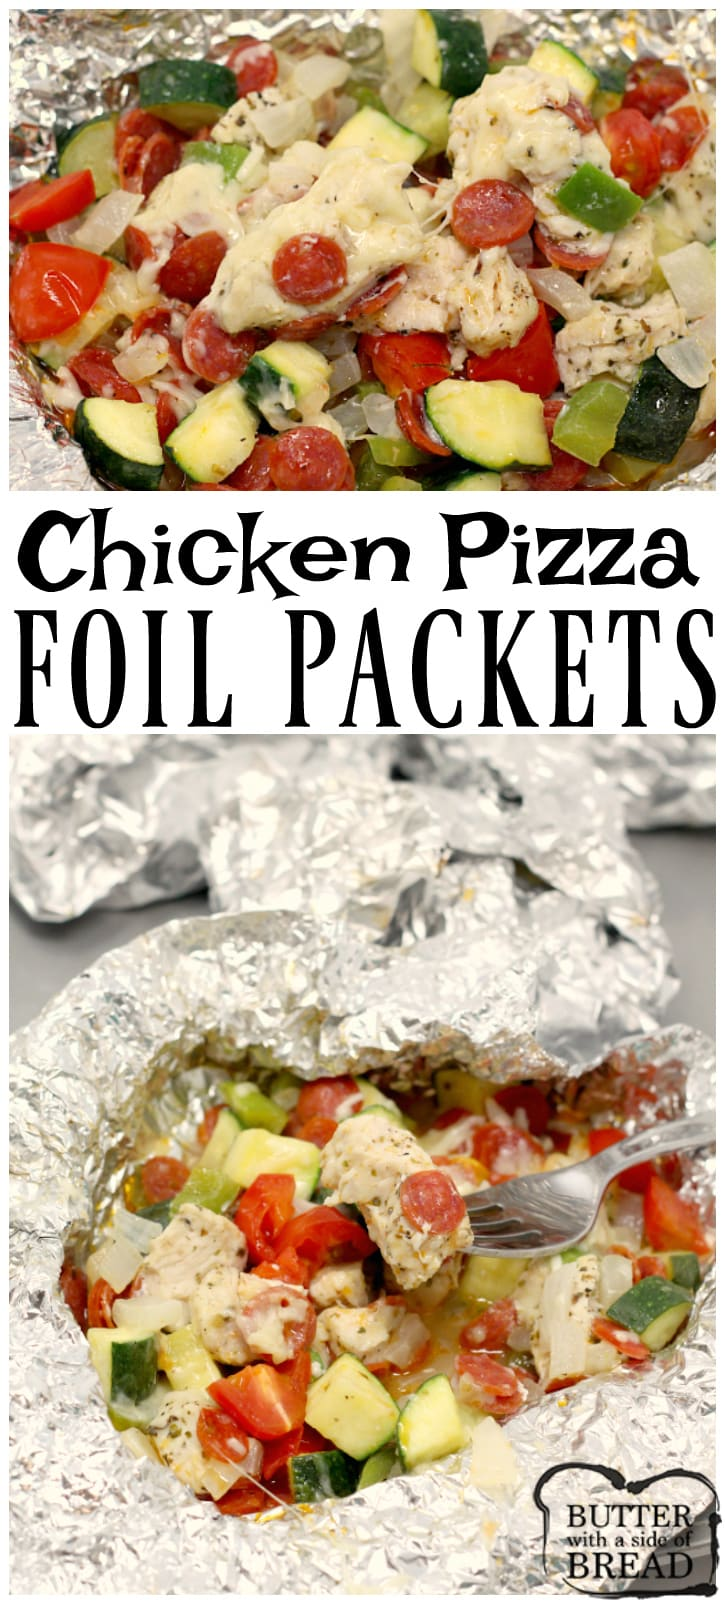 Chicken Pizza Foil Packets are full of chicken, pepperoni, veggies, seasonings and cheese and can be baked in the oven or on the grill!